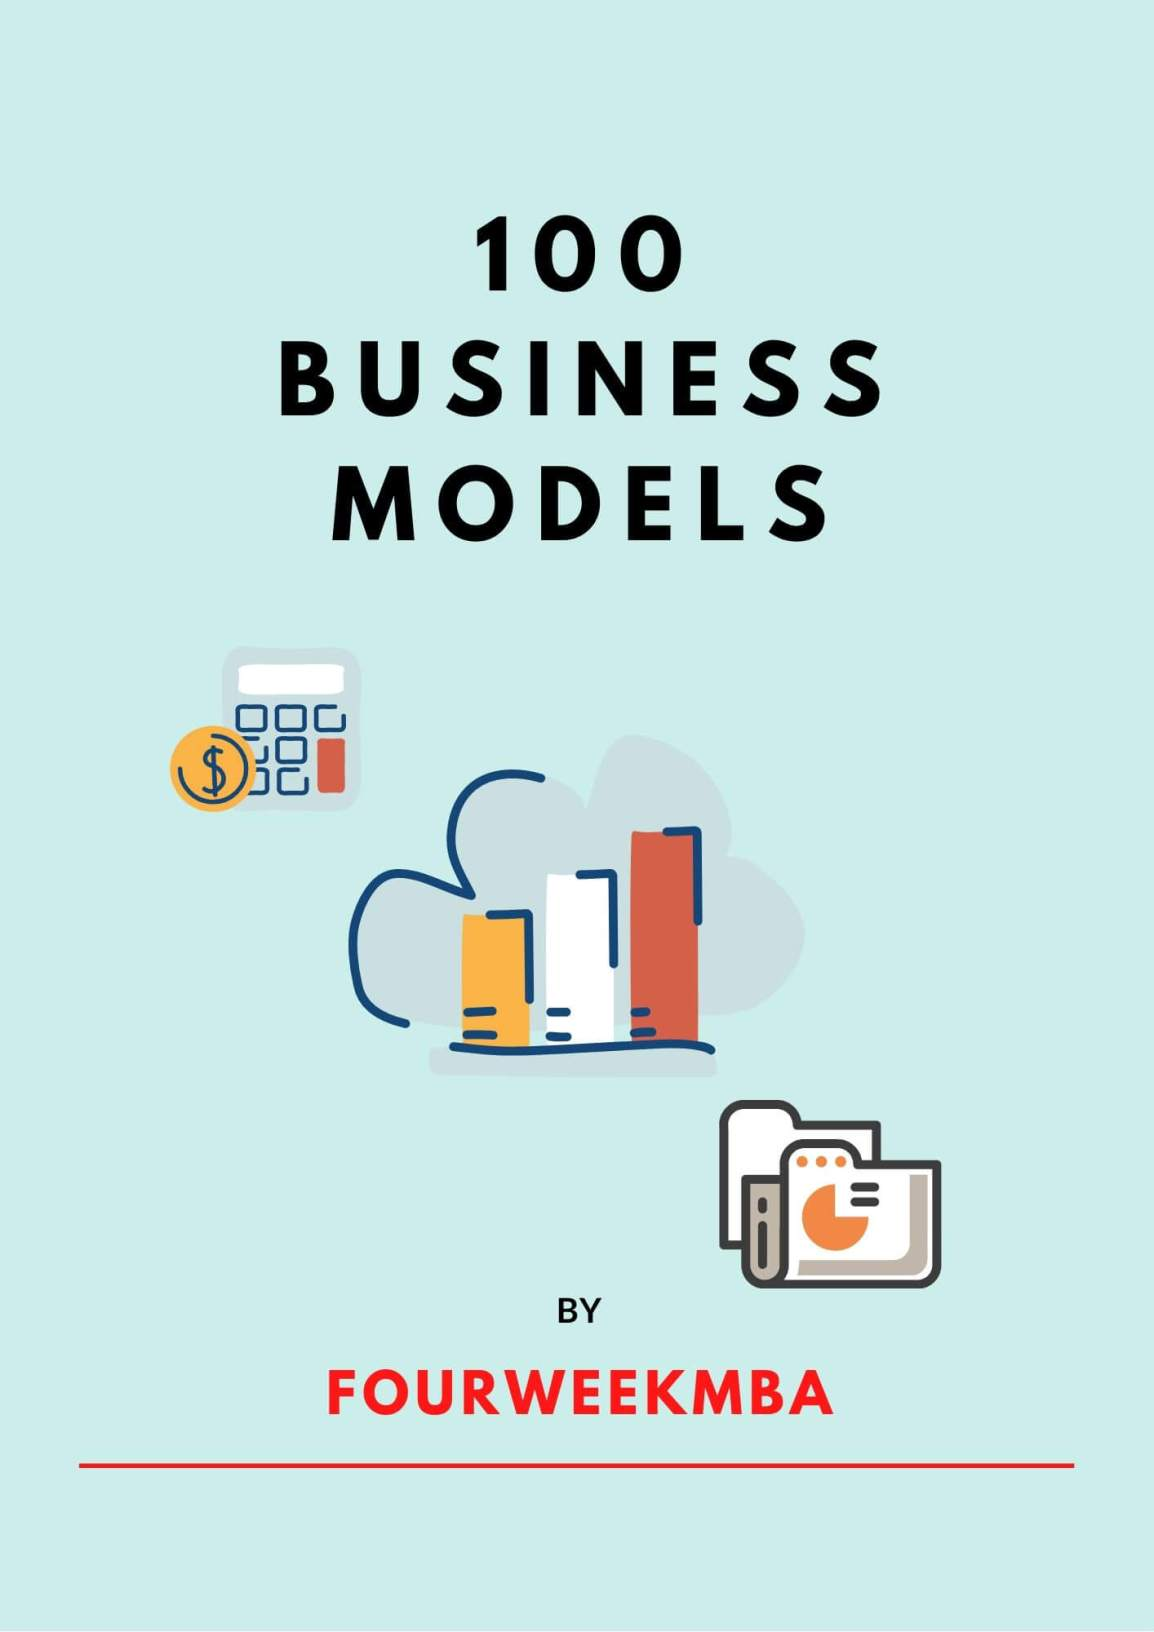 100-business-models